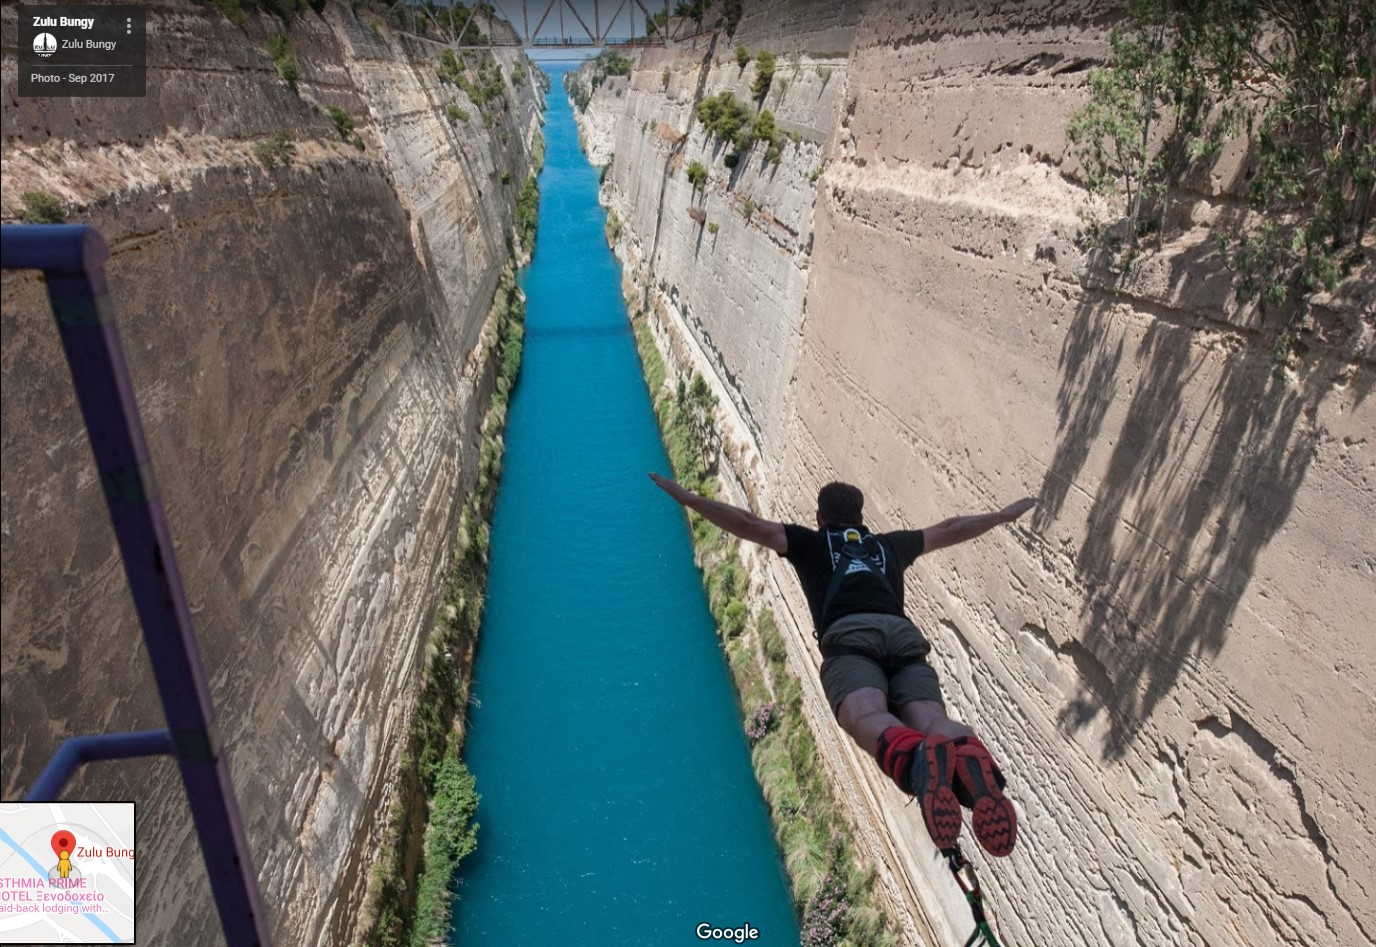 A bungee jumper on the Corinth Canal. Would you? [Photo Credit: Zulu Bungy via Google Maps]